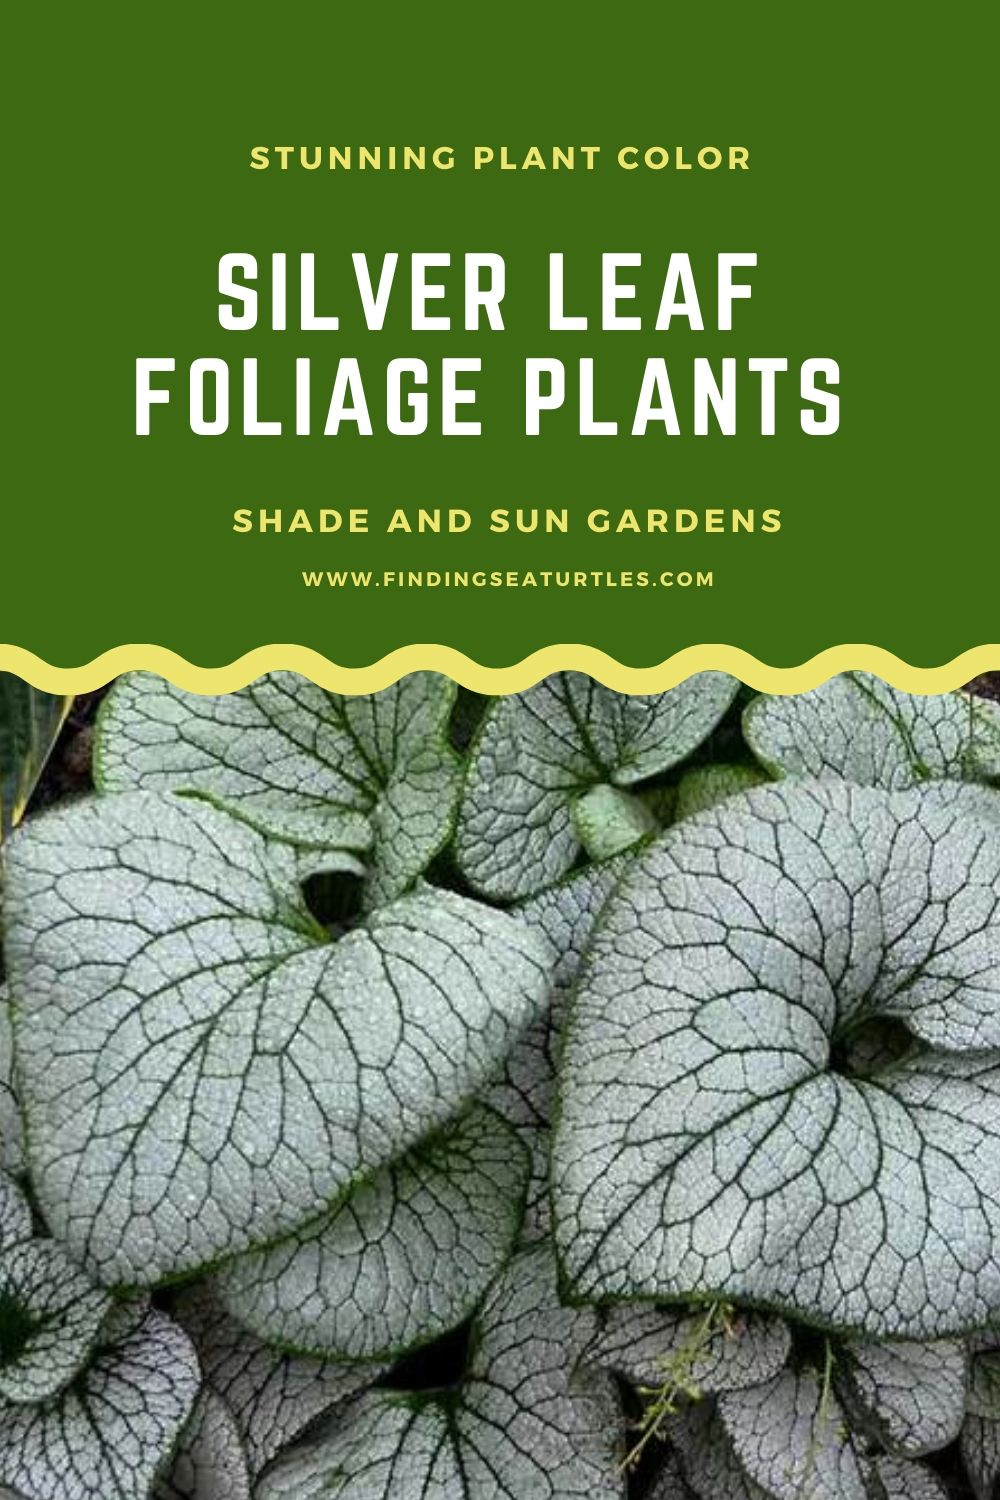 Stunning Plant Color SILVER LEAF FOLIAGE PLANTS Shade and Sun Gardens #SilverFoliage #PlantswithSilverLeaves #DramaticFoliagePlants #Gardening #Landscapes #SilverLeafPlants